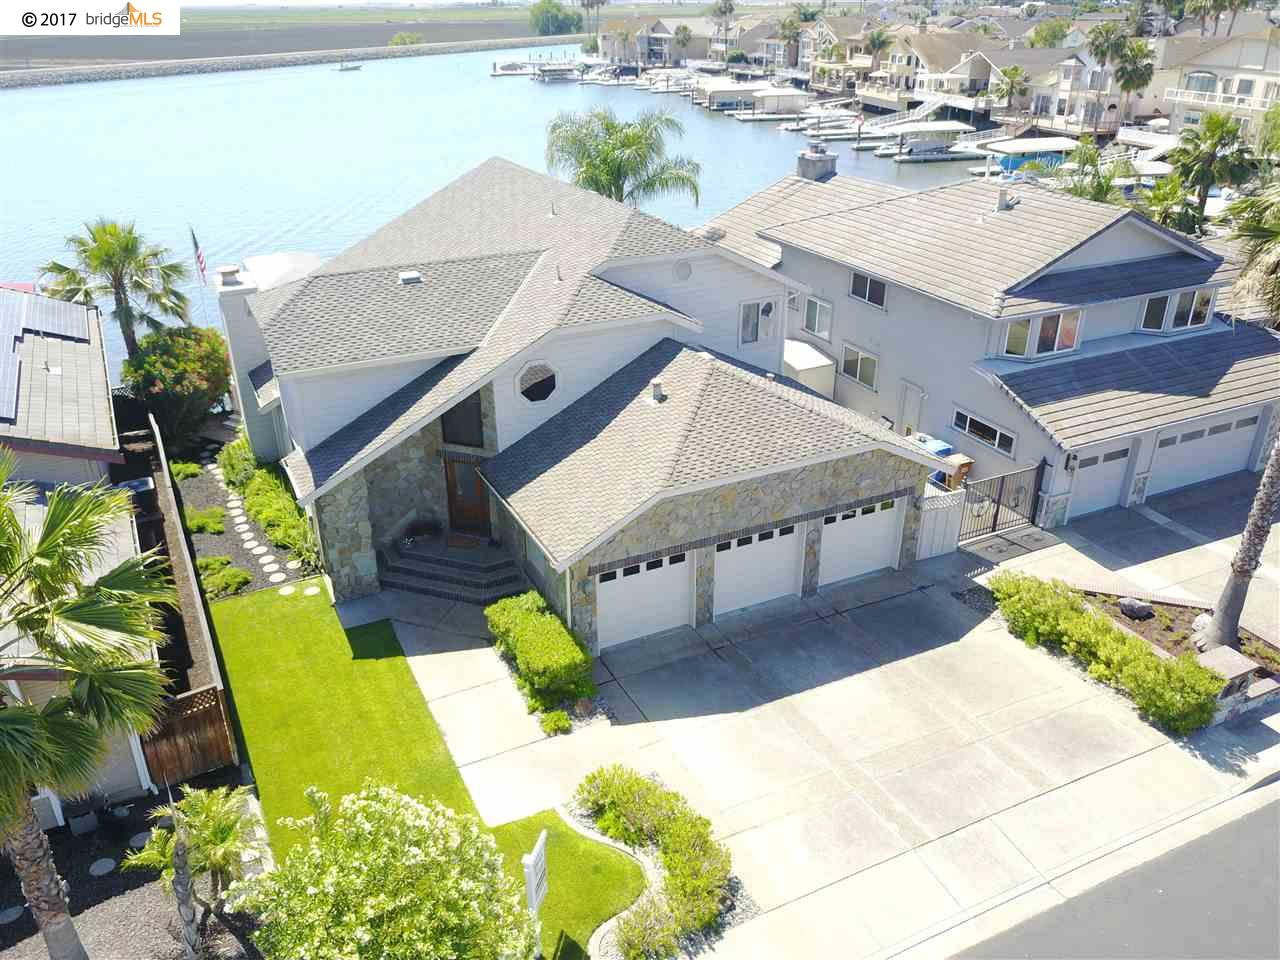 Single Family Home for Sale at 5790 Starboard Drive Discovery Bay, California 94505 United States